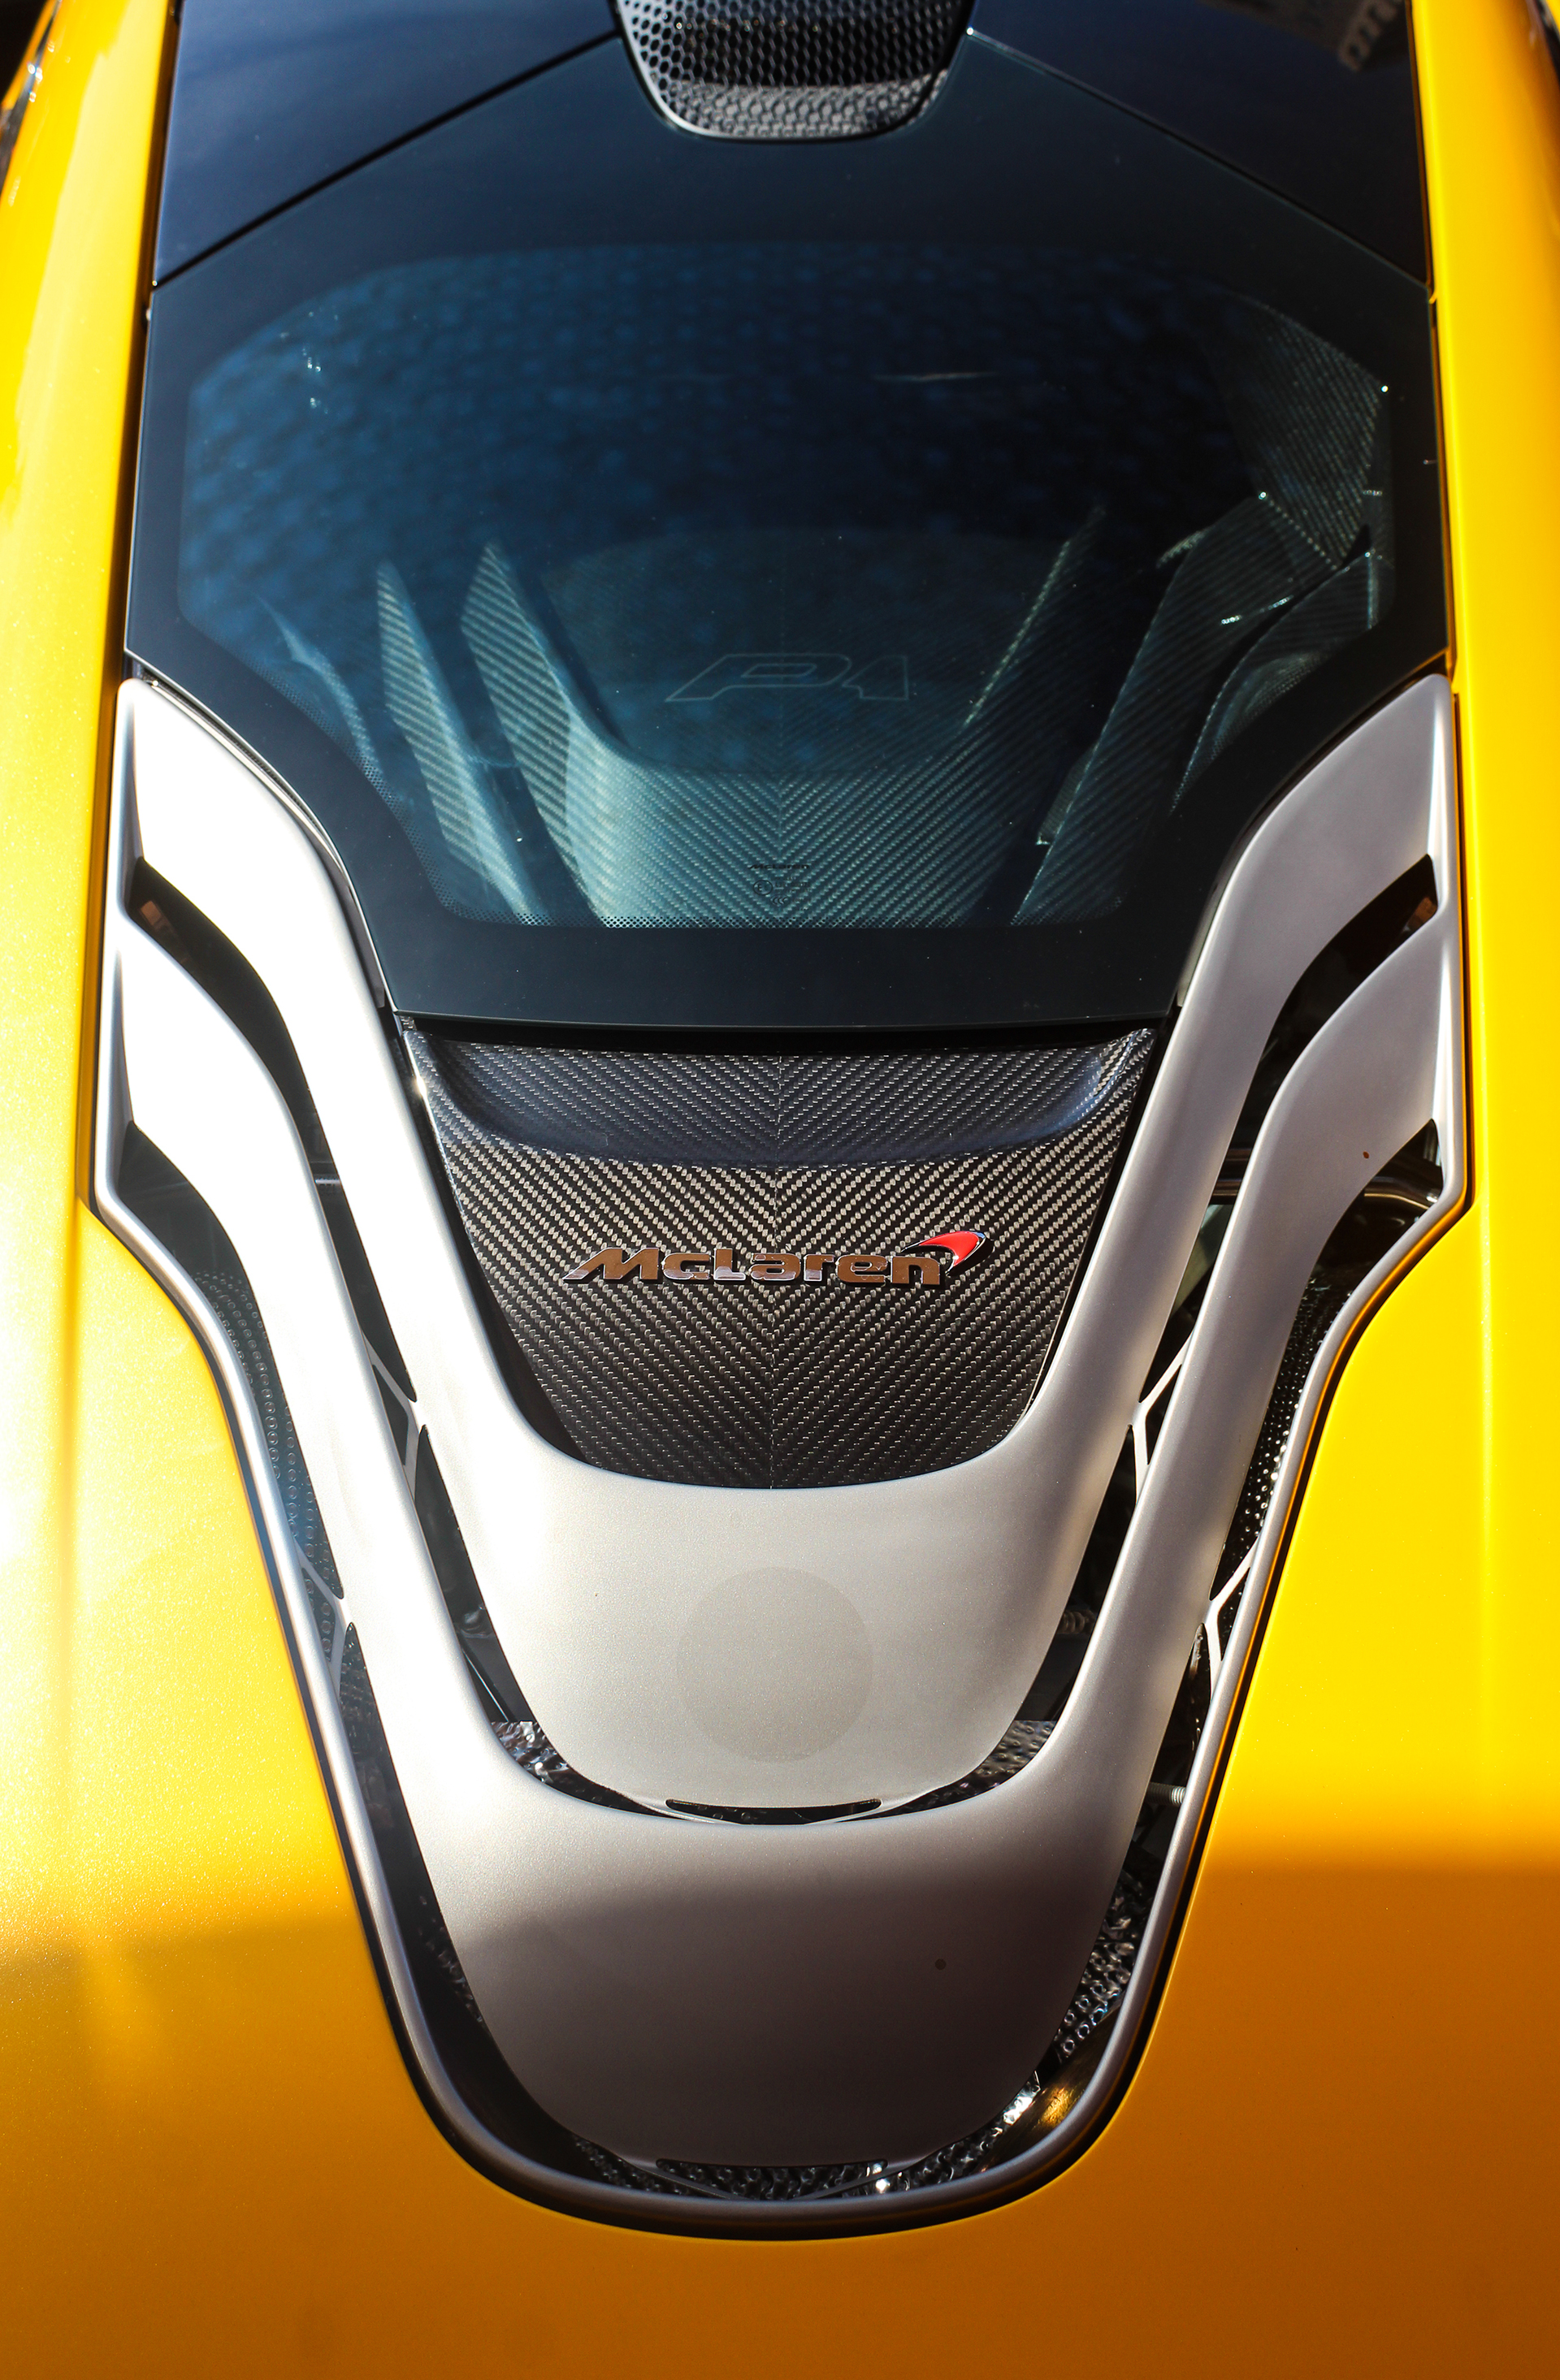 McLaren P1 top under the hood - Top Marques Monaco 2016 - Arnaud Demasier RS Photographie